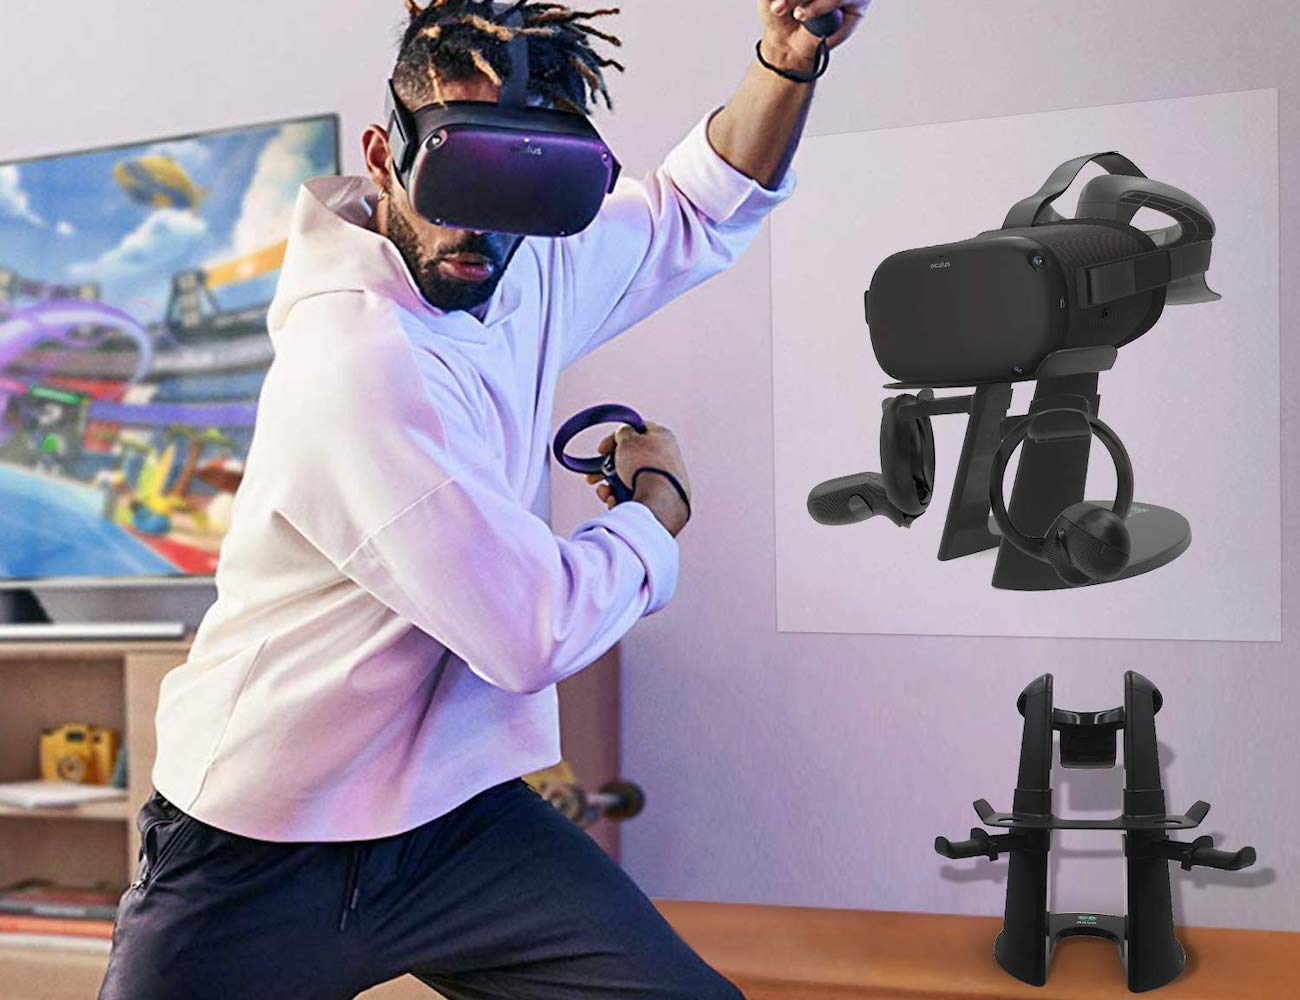 AMVR VR Stand Headset Holder proudly displays your virtual reality headset